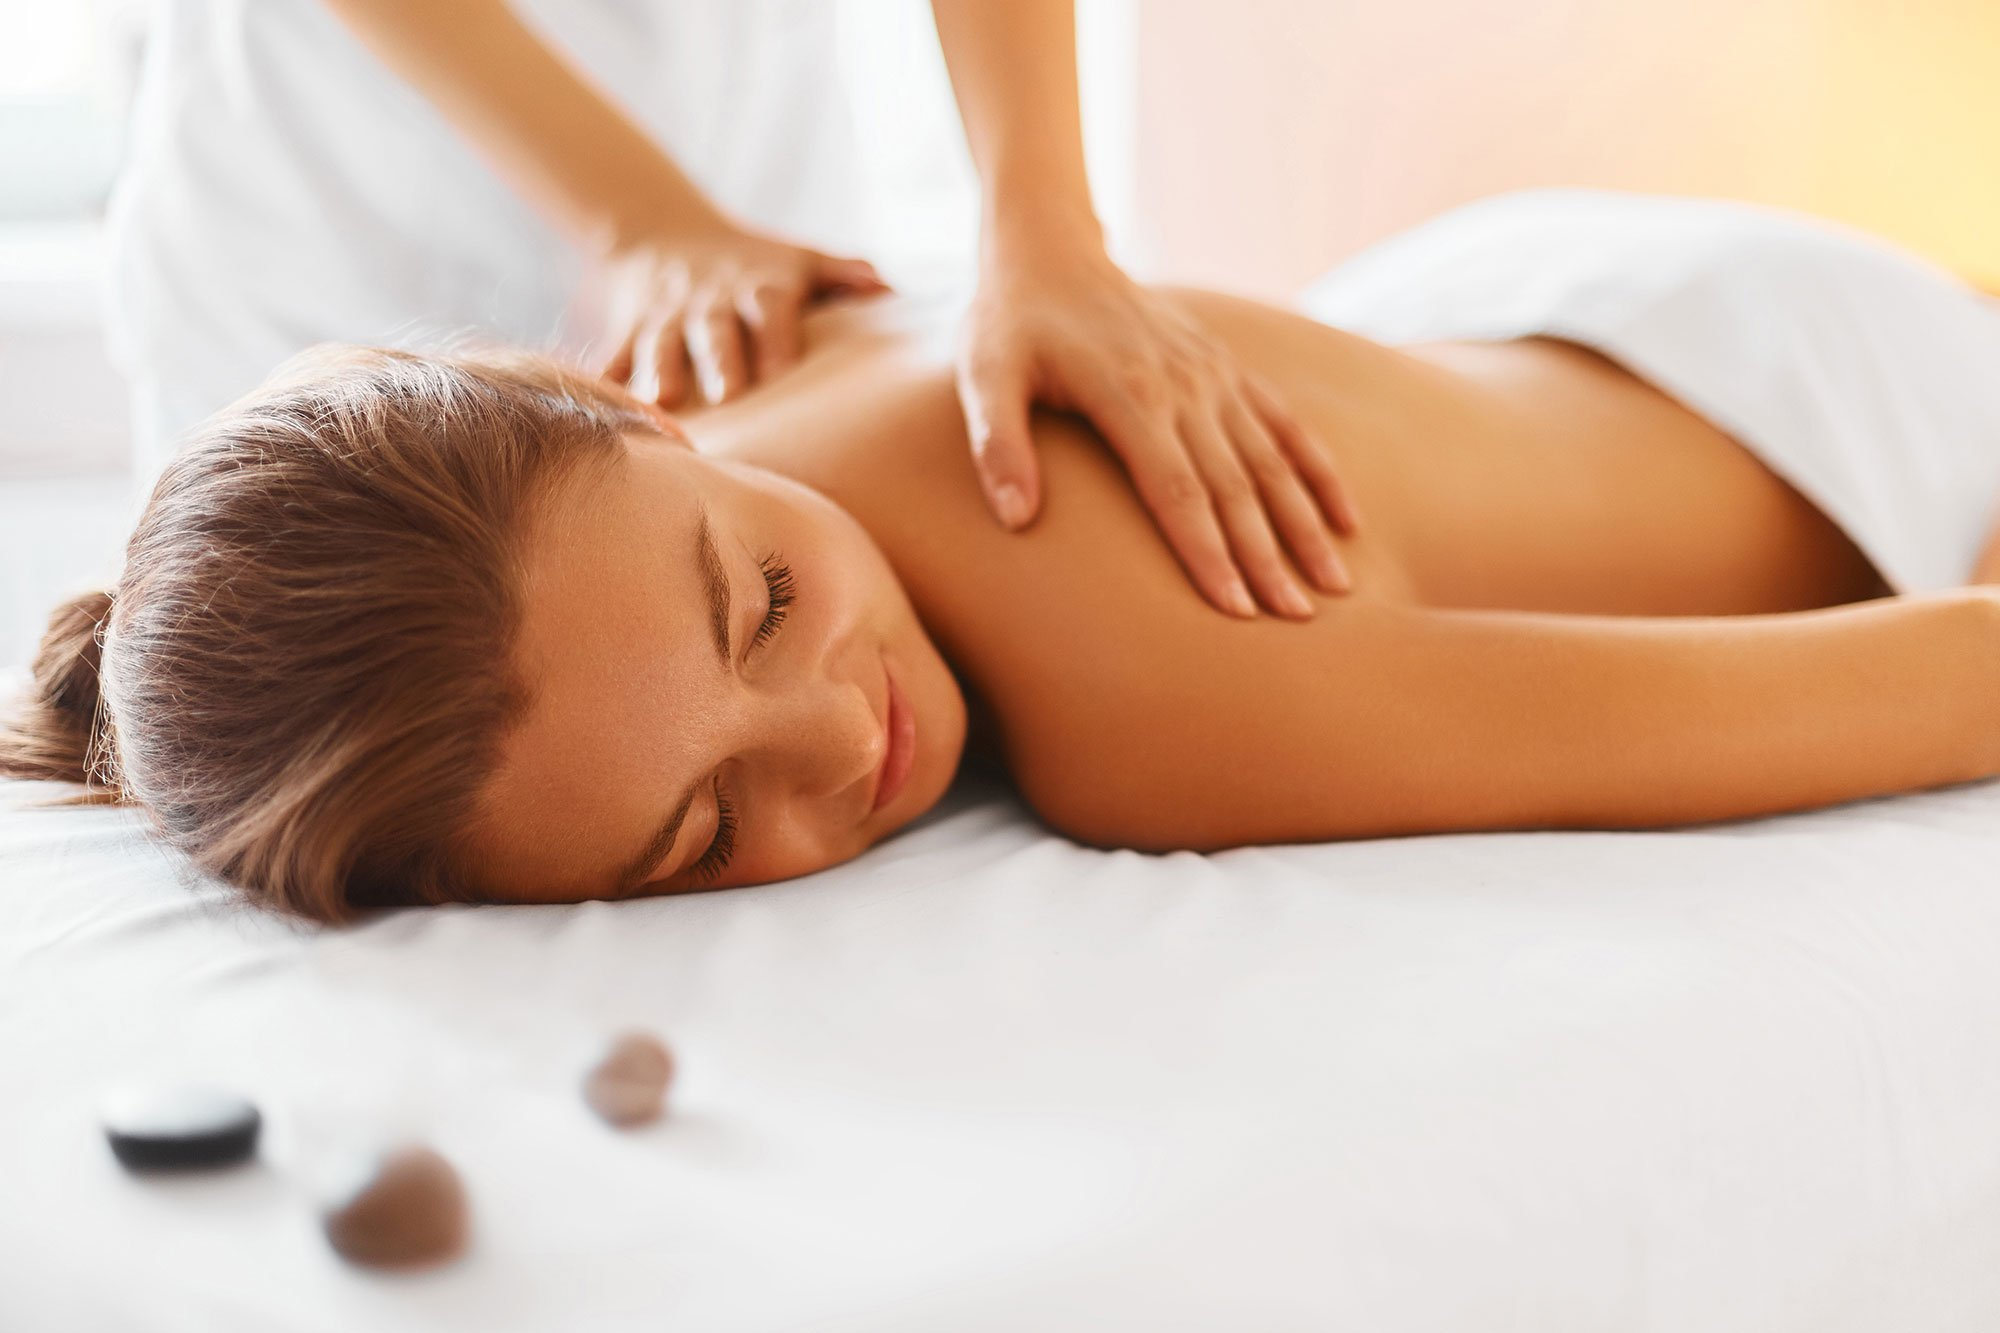 Non-Narcotic Pain Management - Manage Aches and Pains Naturally, non-addictive, massage therapy